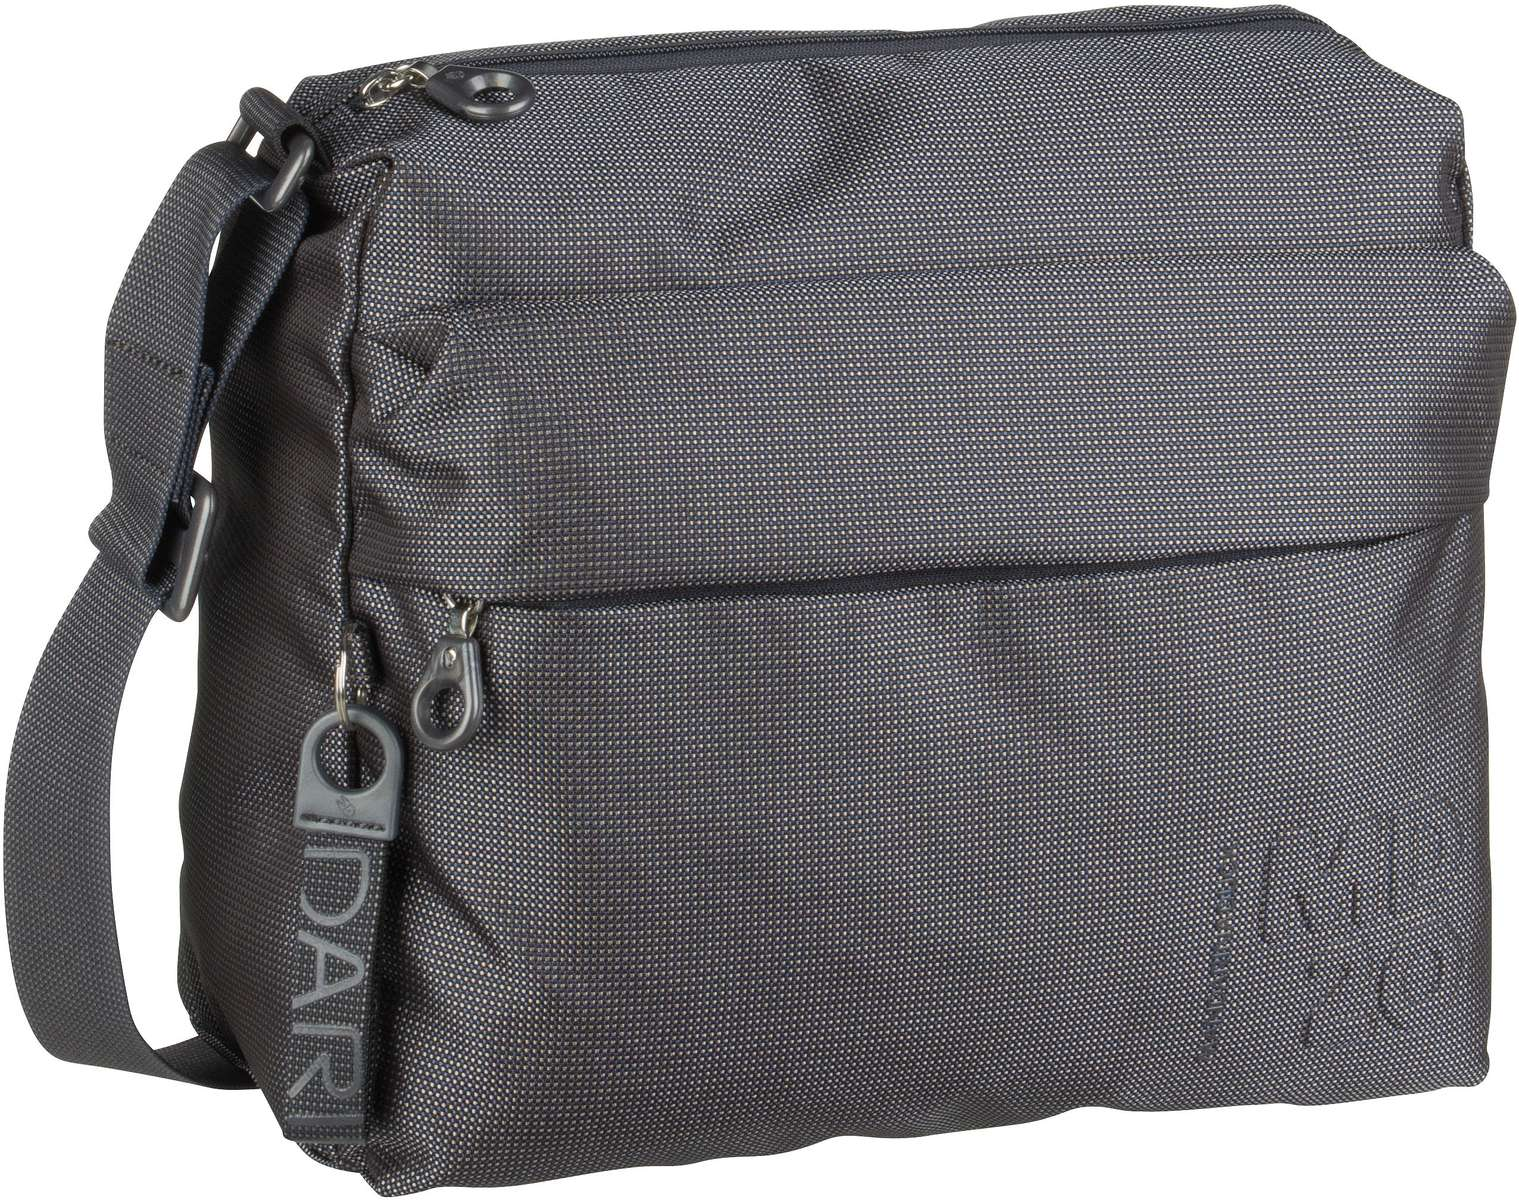 Umhängetasche MD20 Crossover Bag QMTT4 Steel